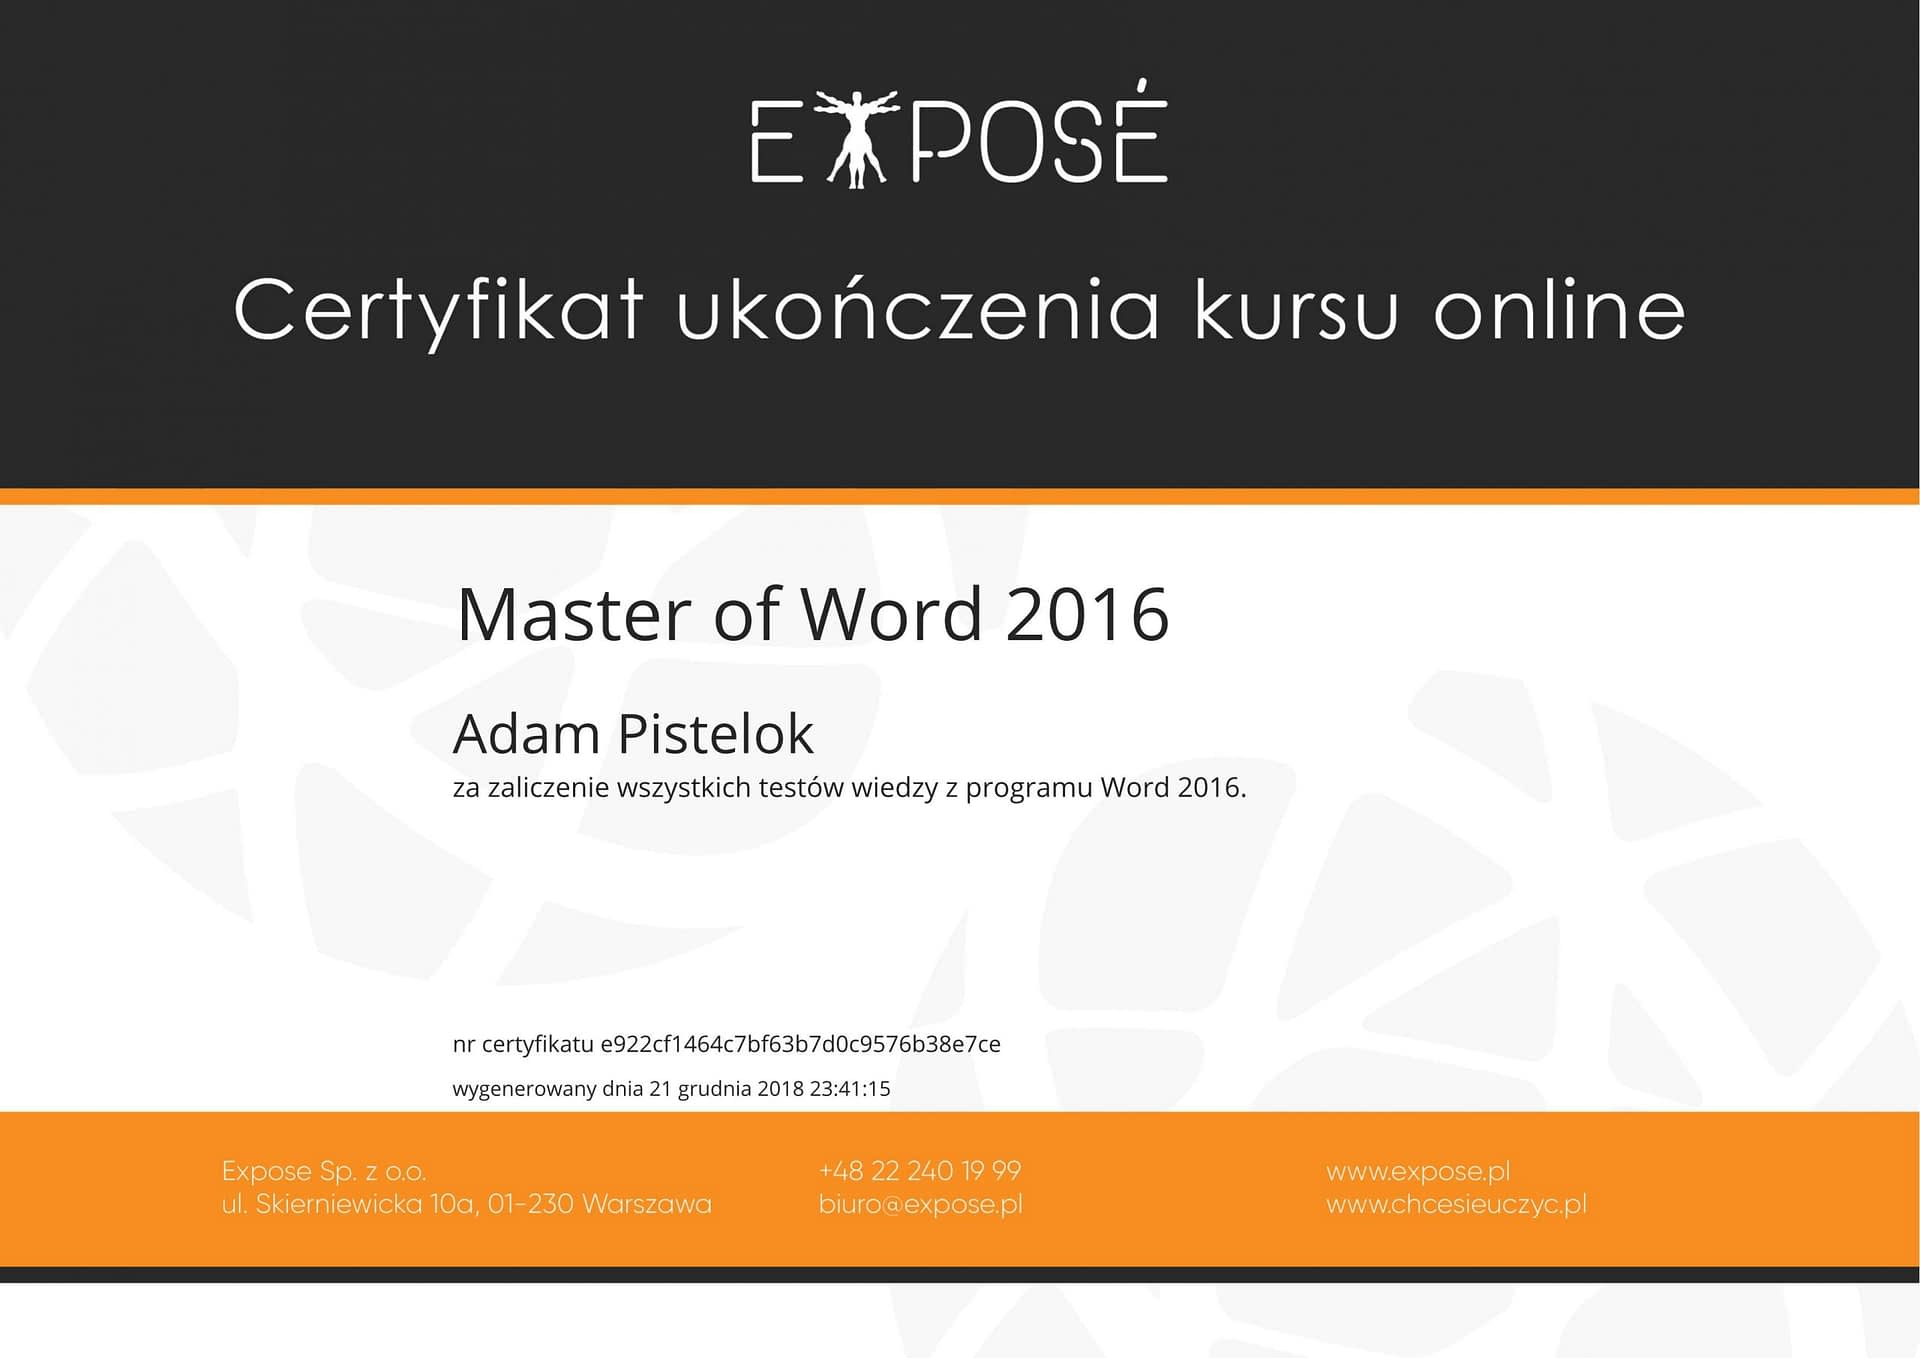 Master of word 2016